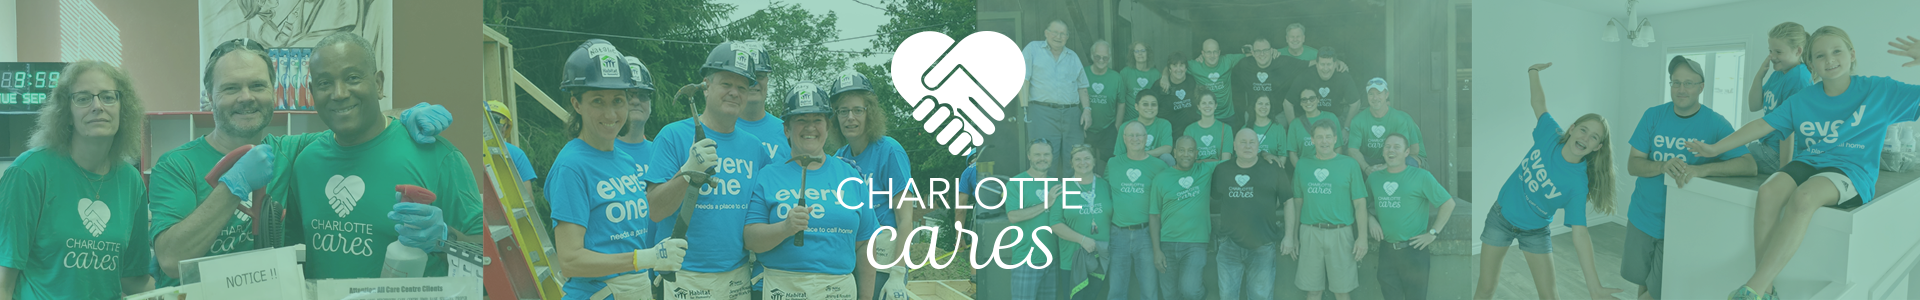 Charlotte Cares